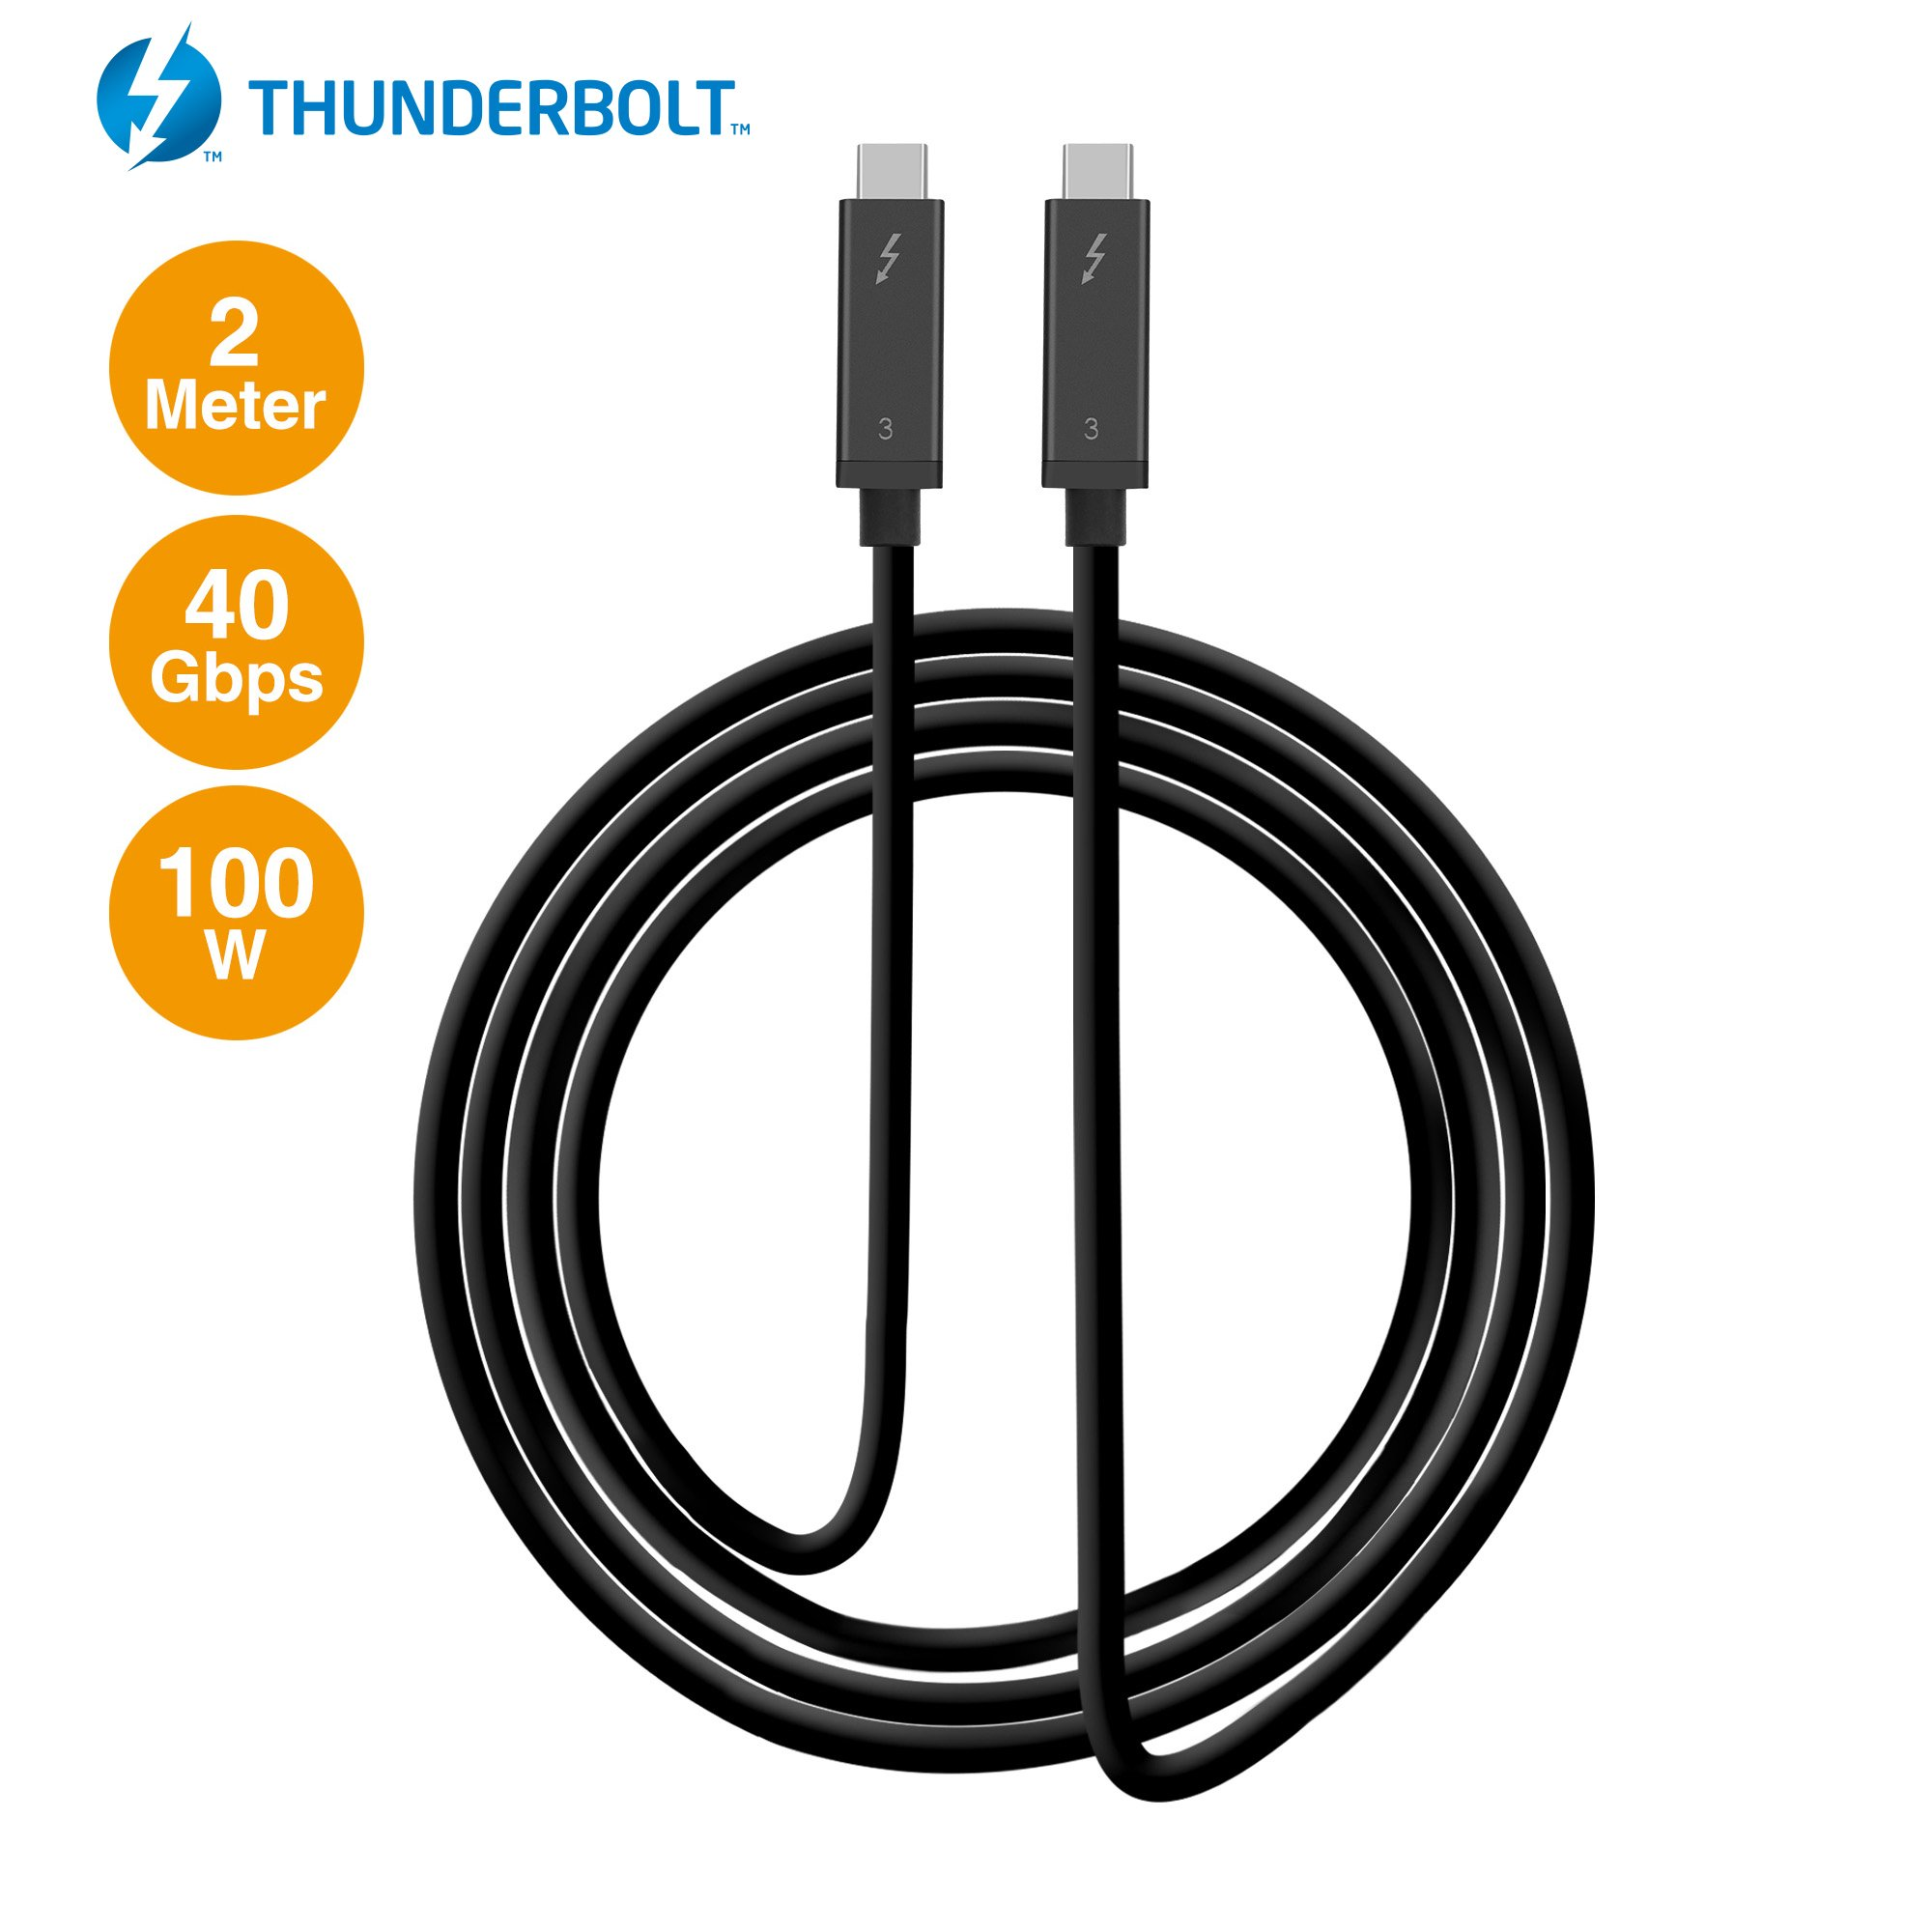 SIIG Thunderbolt 3 Certified, 40Gbps 2M Thunderbolt 3 Active Cable - 100W Charging/5A/20V - Daisy Chain up to 6 Devices - USB Type C with Thunderbolt Logo Compatible - 6.6 Ft by SIIG